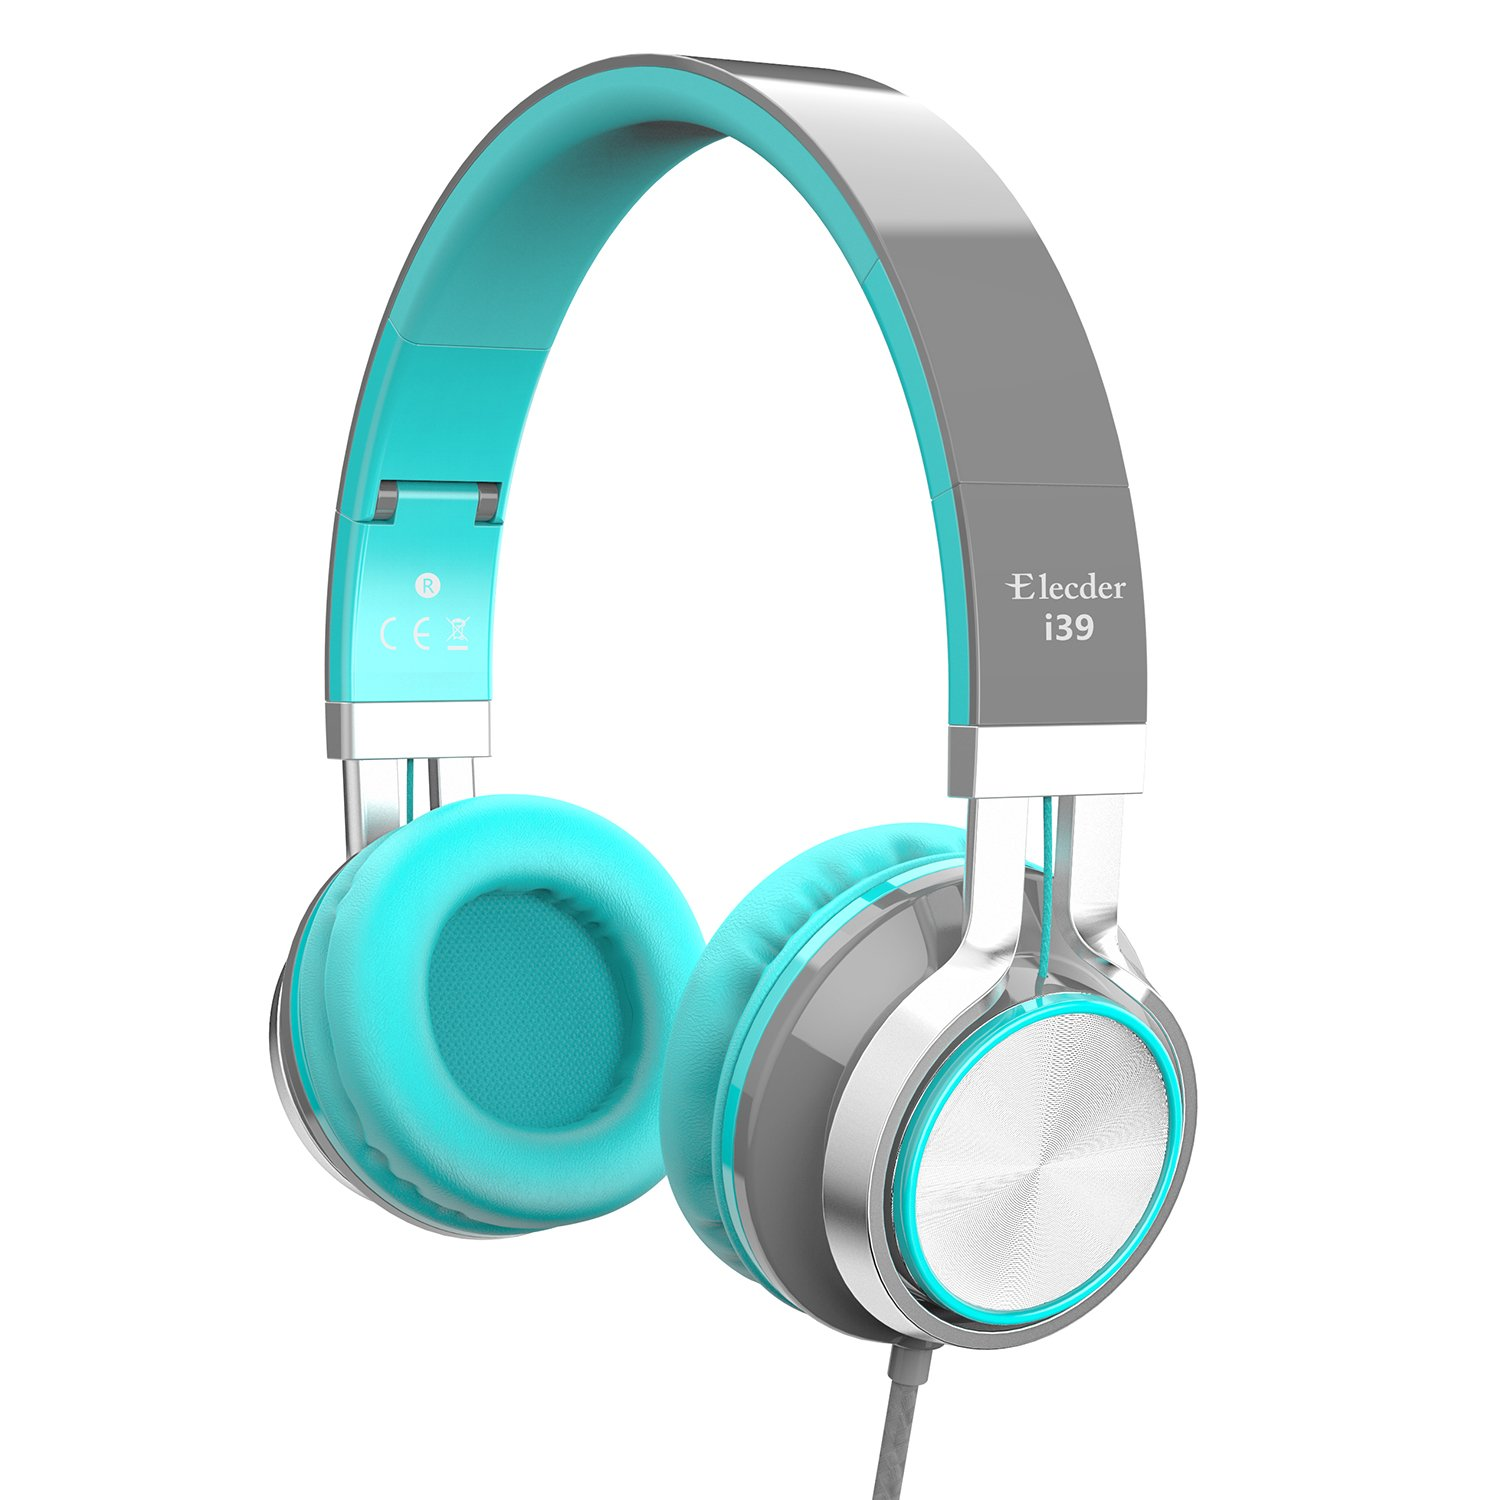 Elecder i39 Headphones with Microphone for Kids, Children, Girls, Boys, Teens, Adults, Foldable Adjustable Wired Over Ear Headsets for iPad Cellphones Computer MP3/4 (Gray/Mint Green)